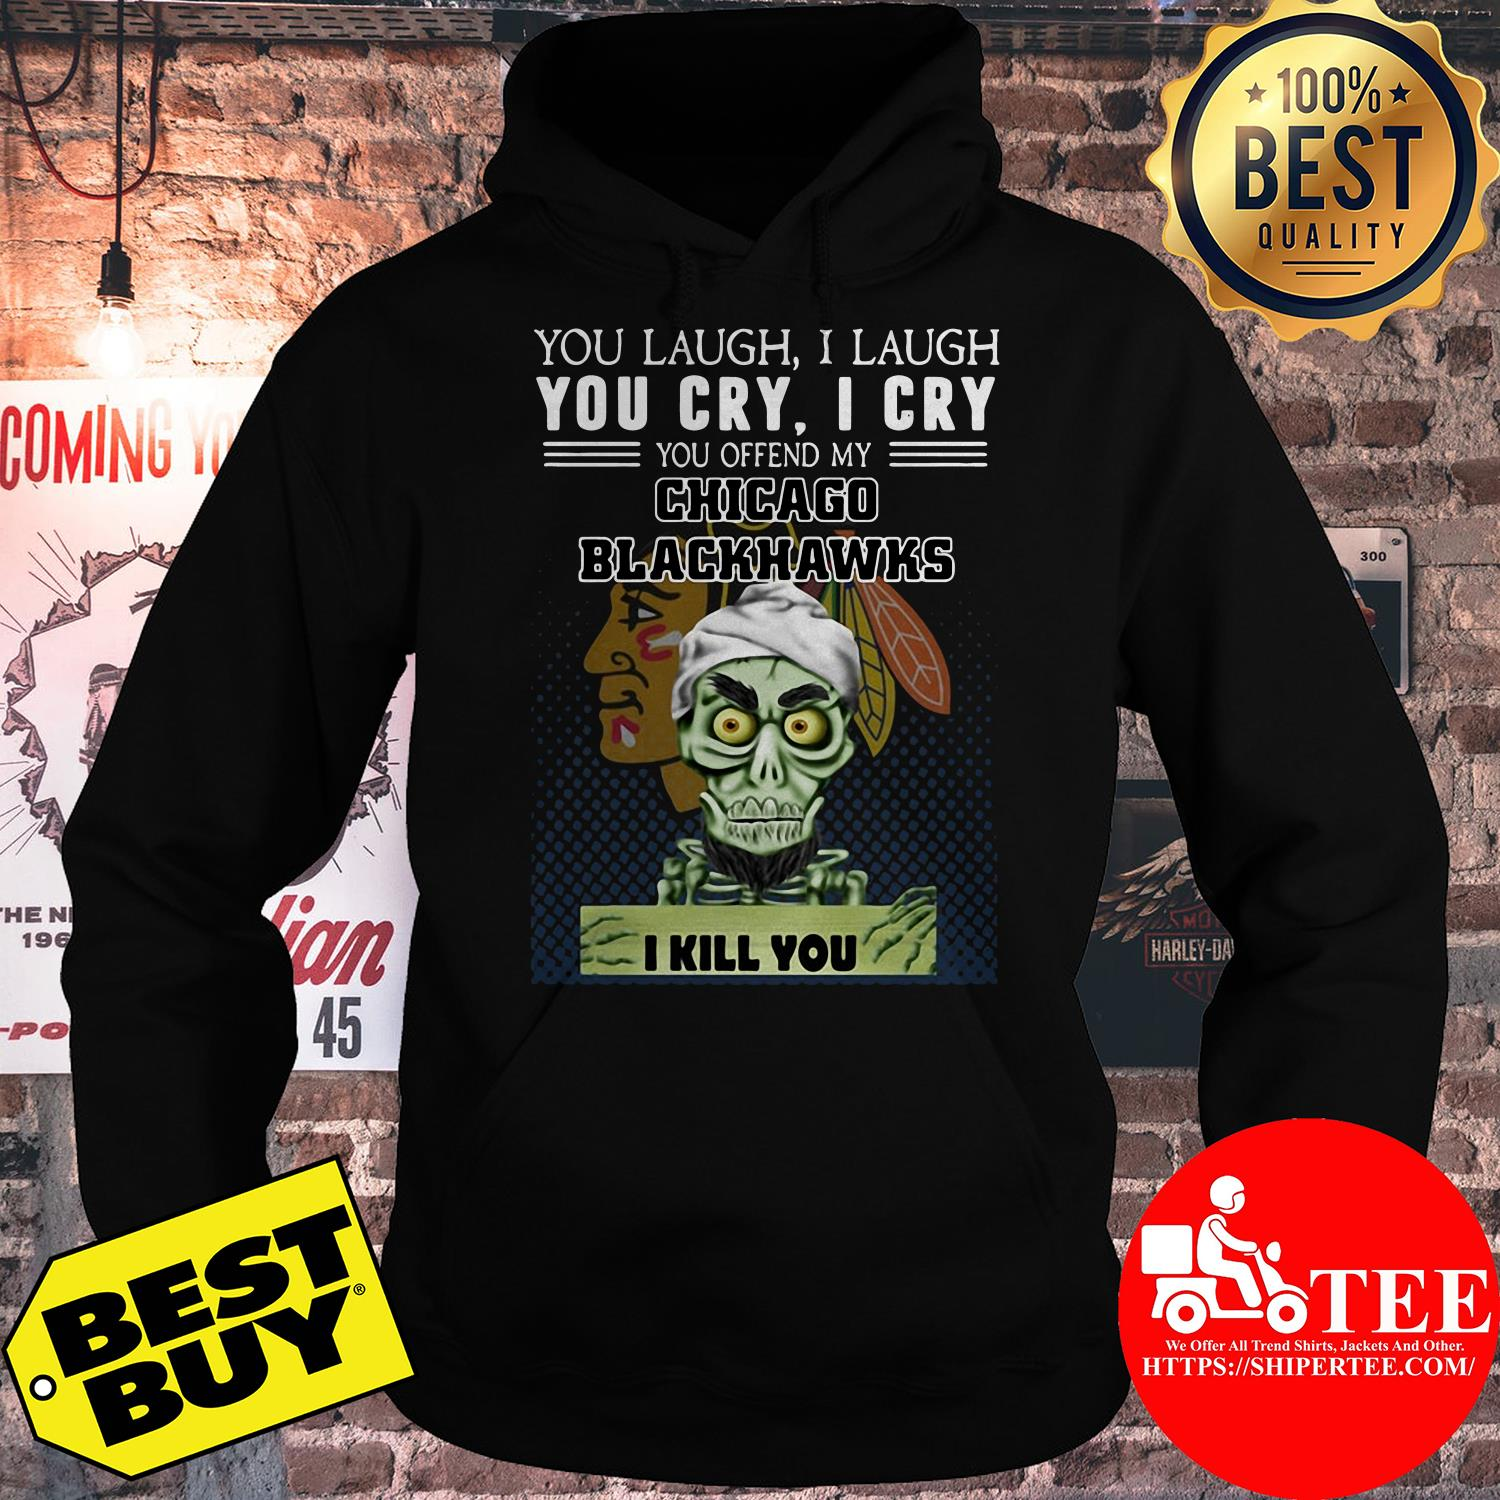 You laugh I laugh you cry I cry you offend my Chicago Blackhawks hoodie